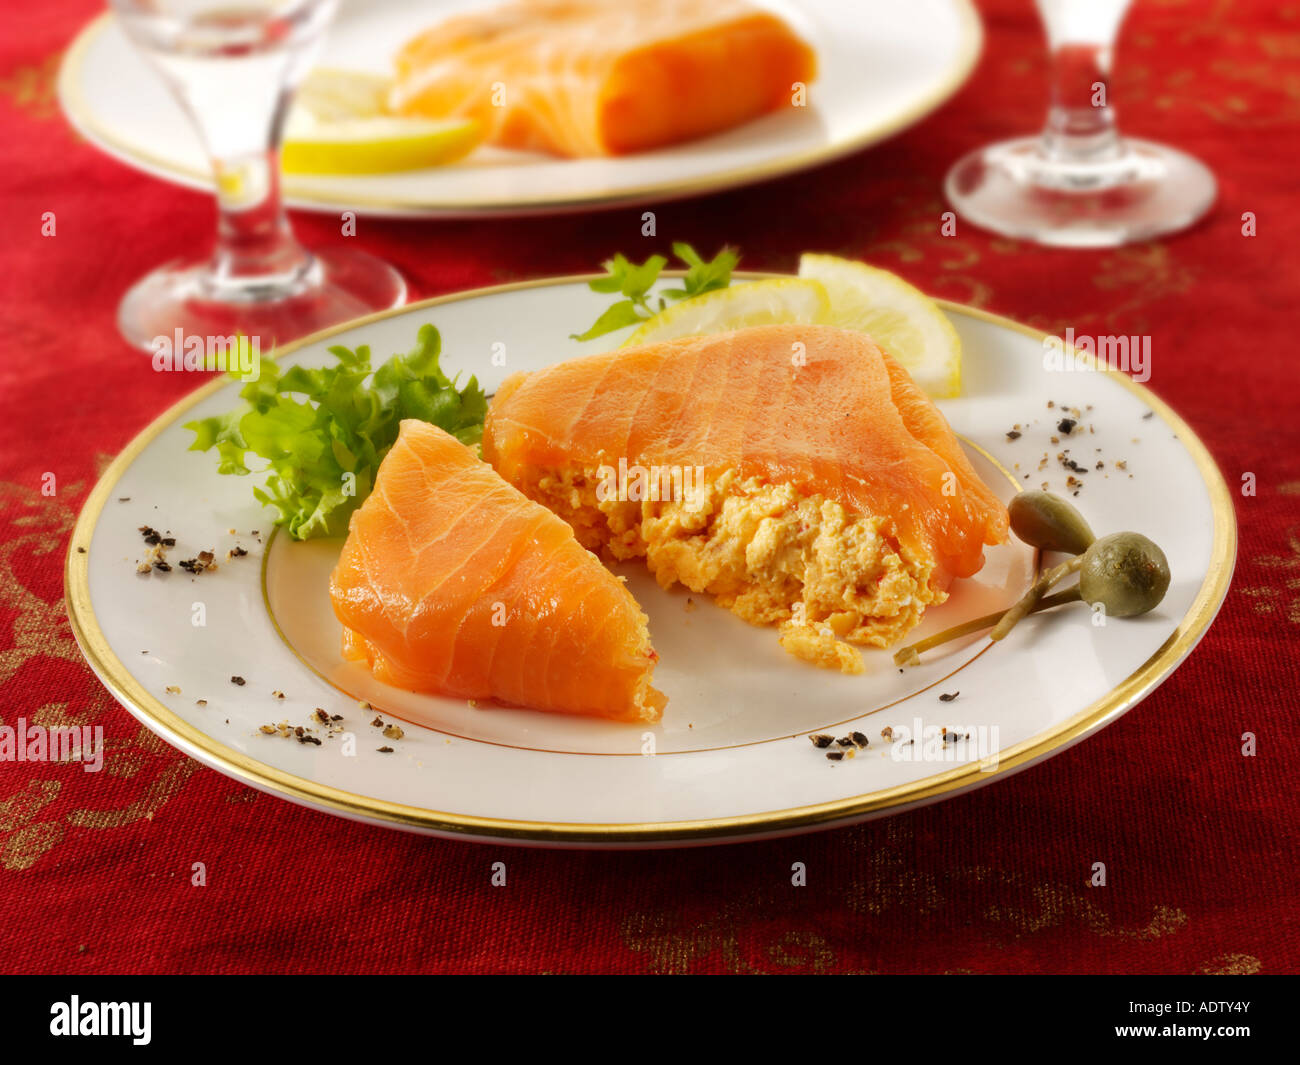 Smoked salmon parcel filled with cream cheese and cream cheese and crab in a party buffet setting - Stock Image